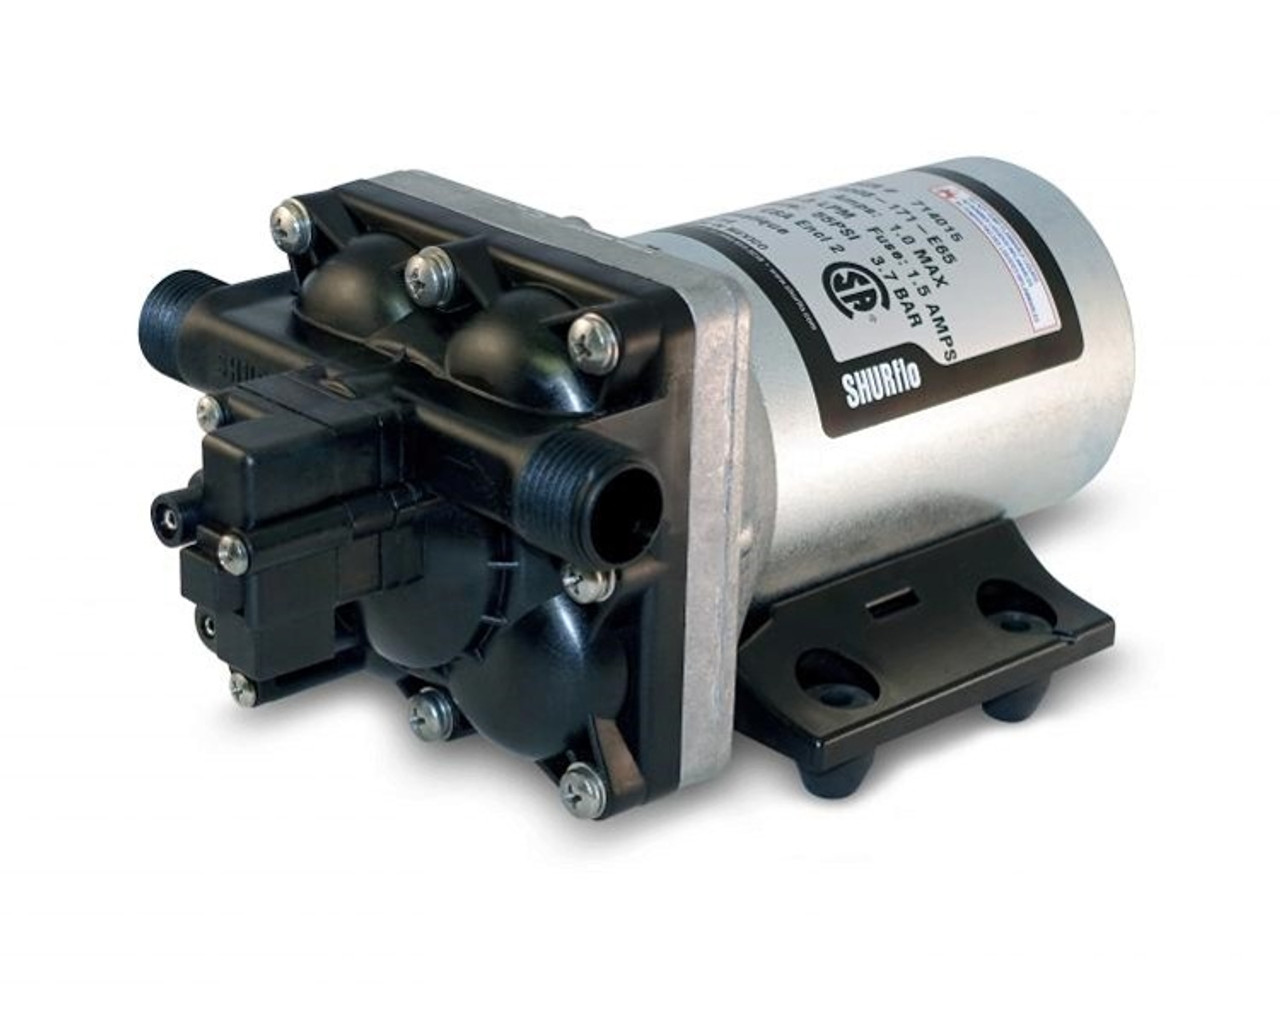 SHURFLO STANDARD WATER PUMP (10-1001) PRODUCT PICTURED